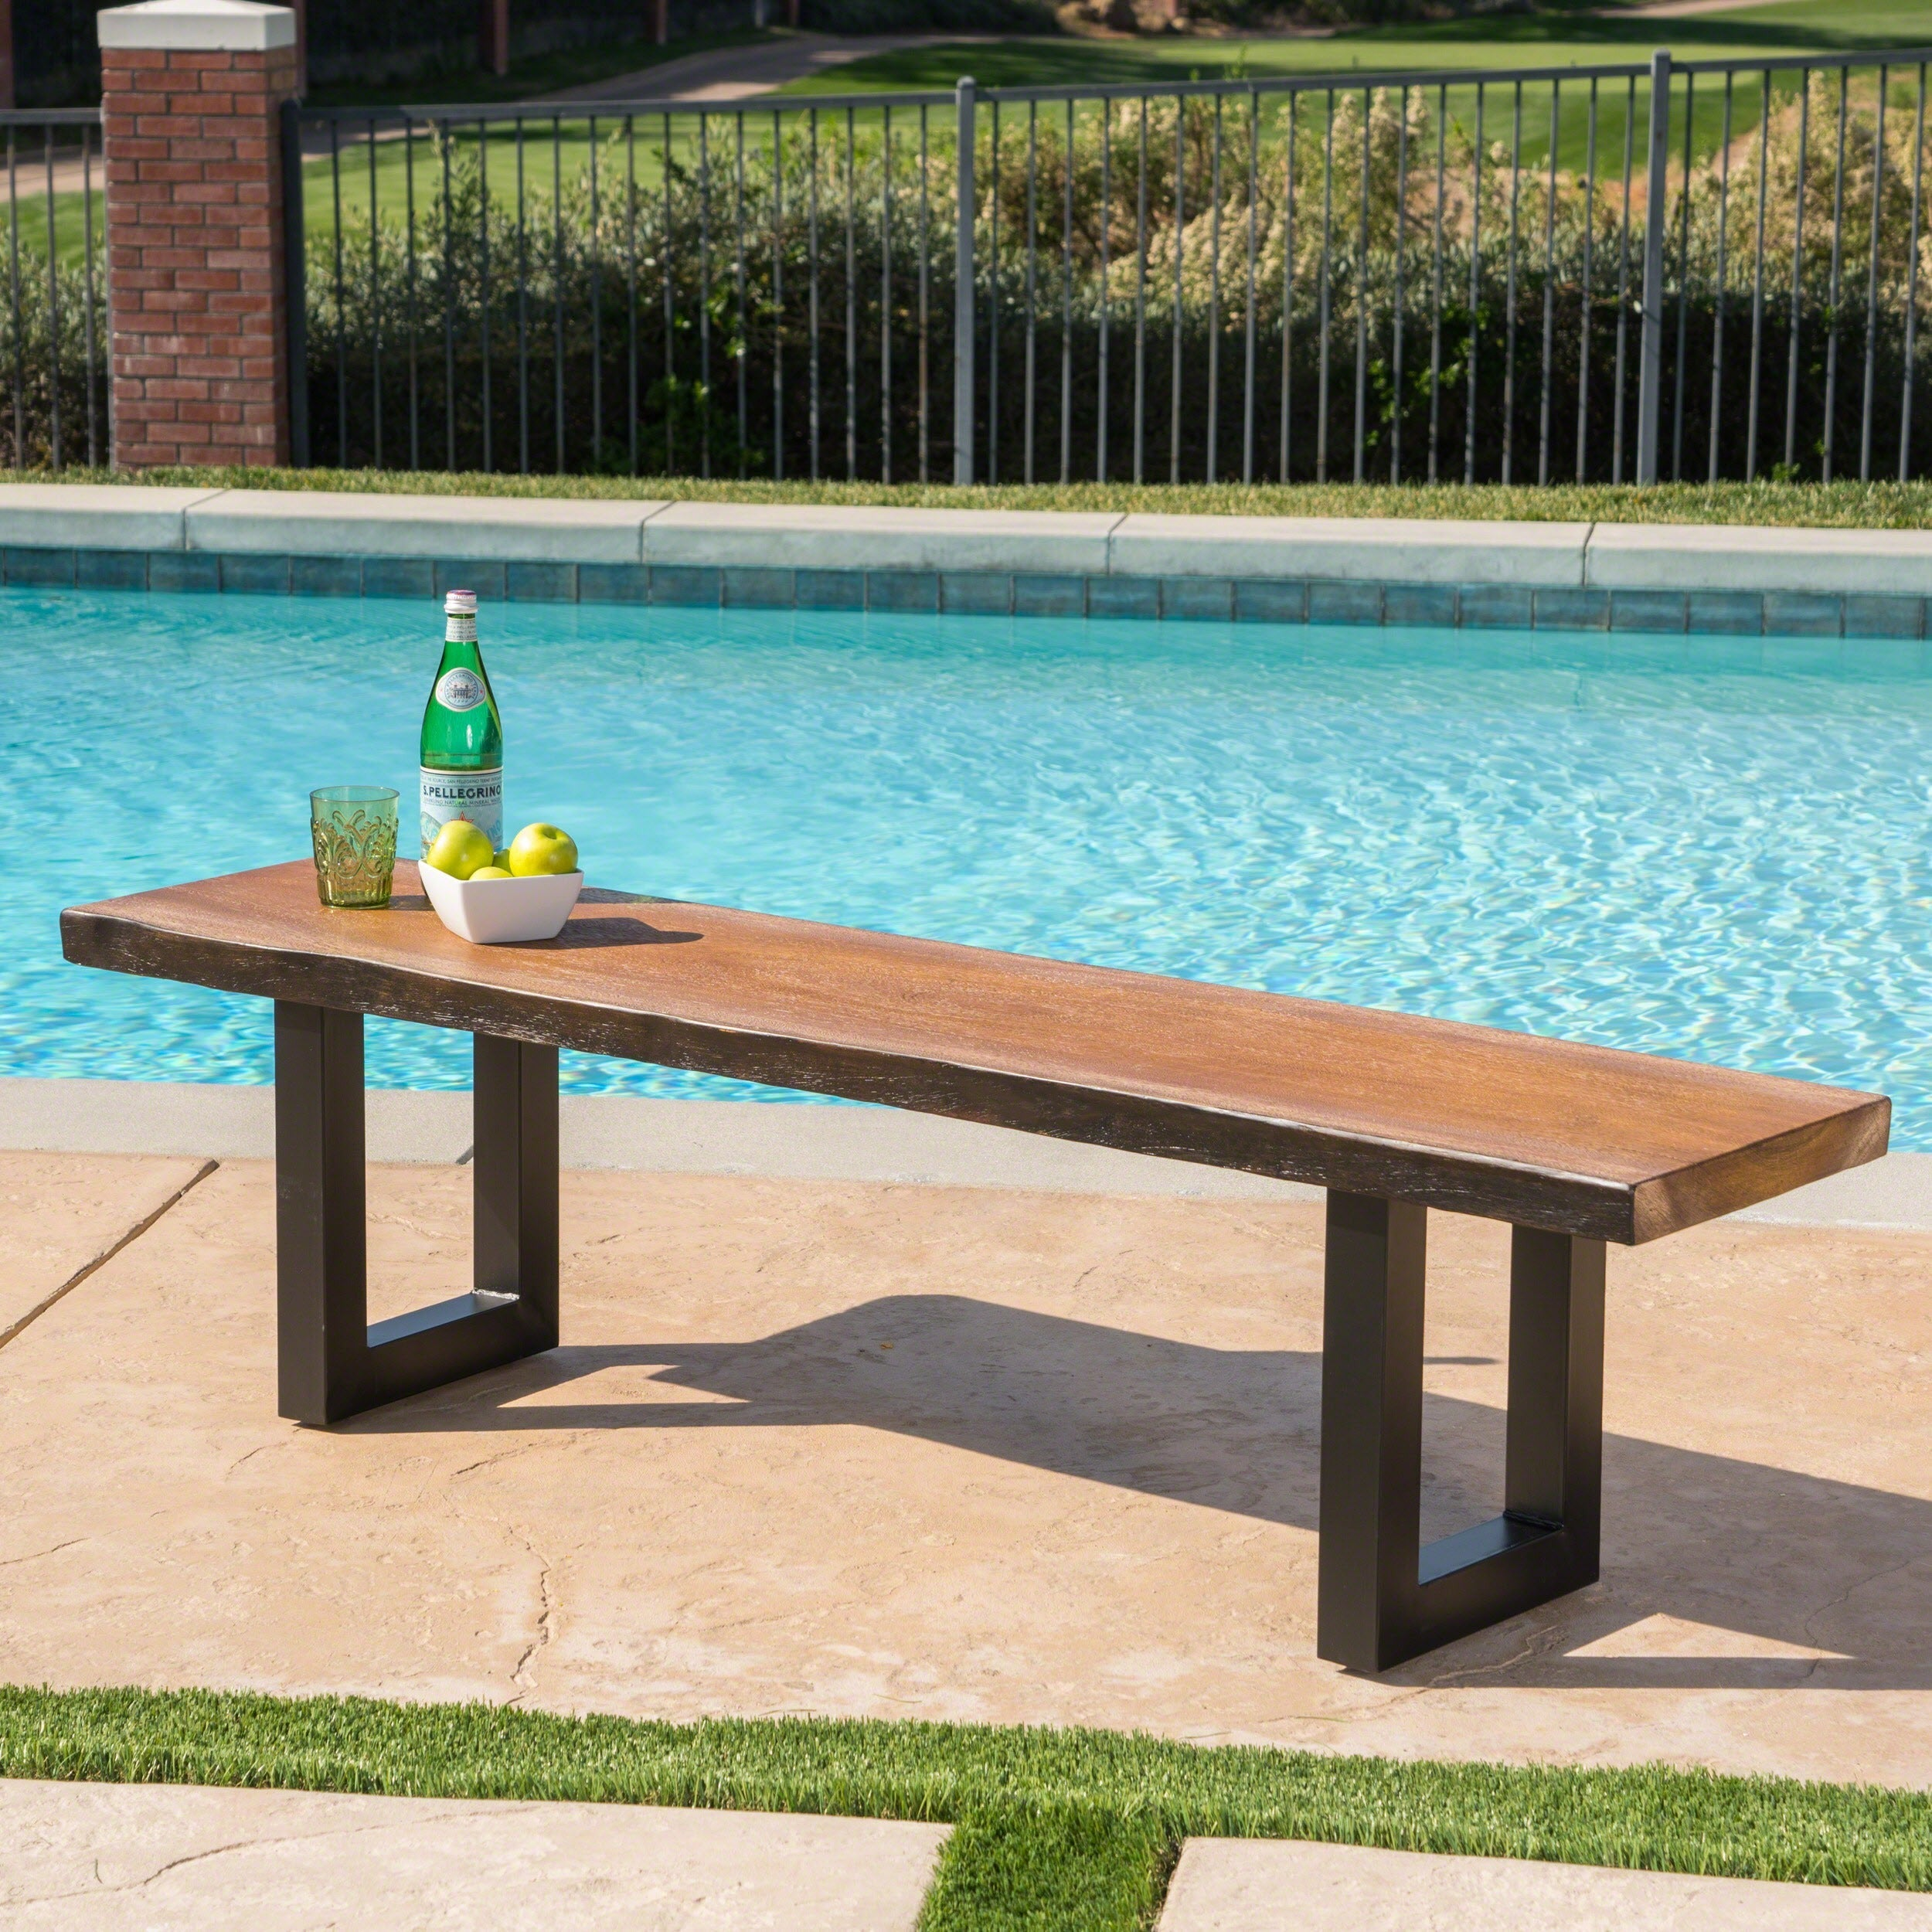 Outstanding Caldwell Outdoor Faux Live Edge Rectangle Concrete Picnic Dining Bench By Christopher Knight Home Evergreenethics Interior Chair Design Evergreenethicsorg